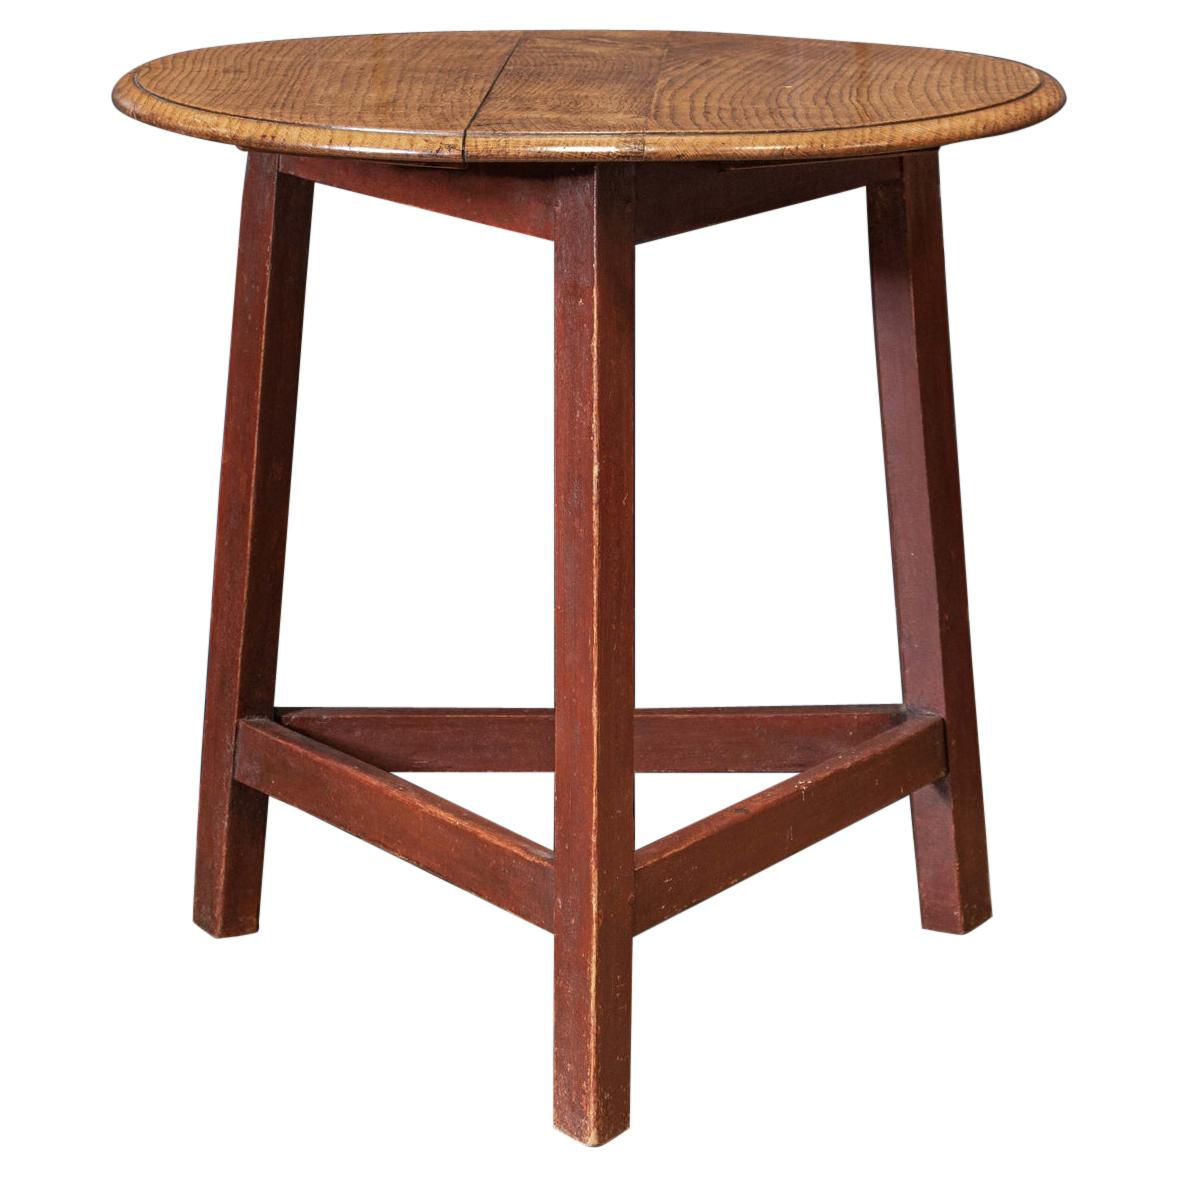 19th C English Painted Ash Cricket Table